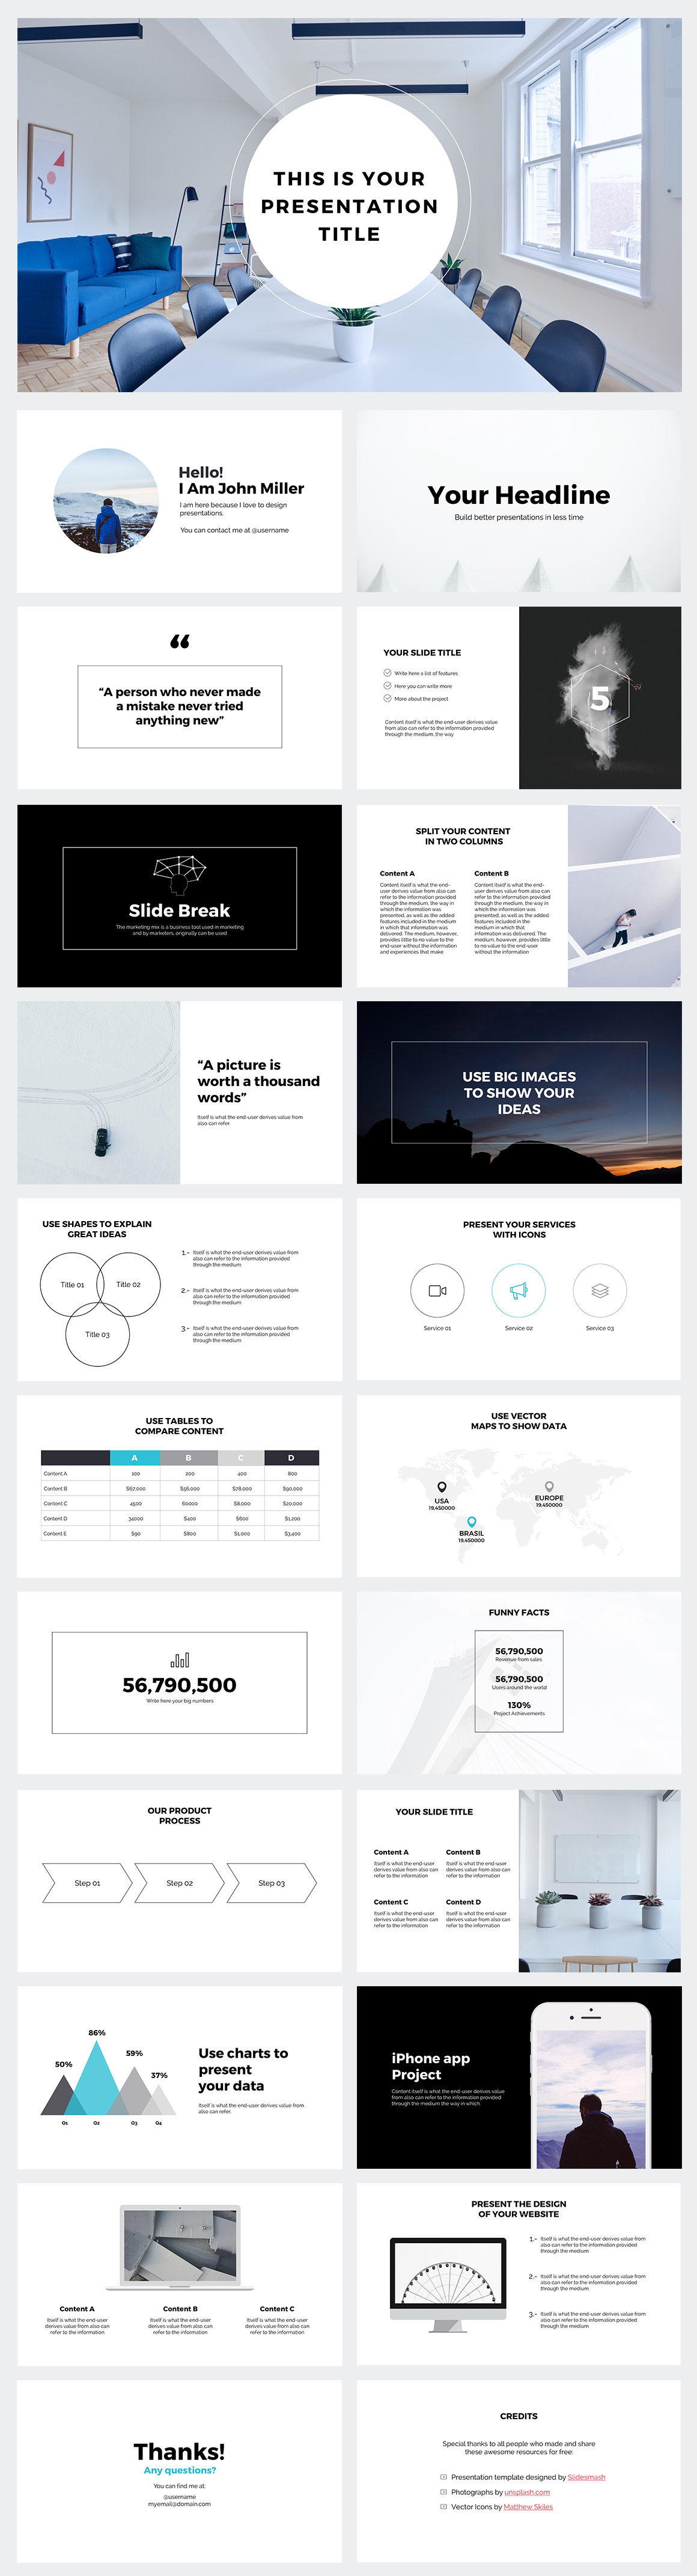 Free business strategy powerpoint template on behance download this free business strategy powerpoint template to use in your project all elements on this template are fully editable so you can customize your wajeb Choice Image